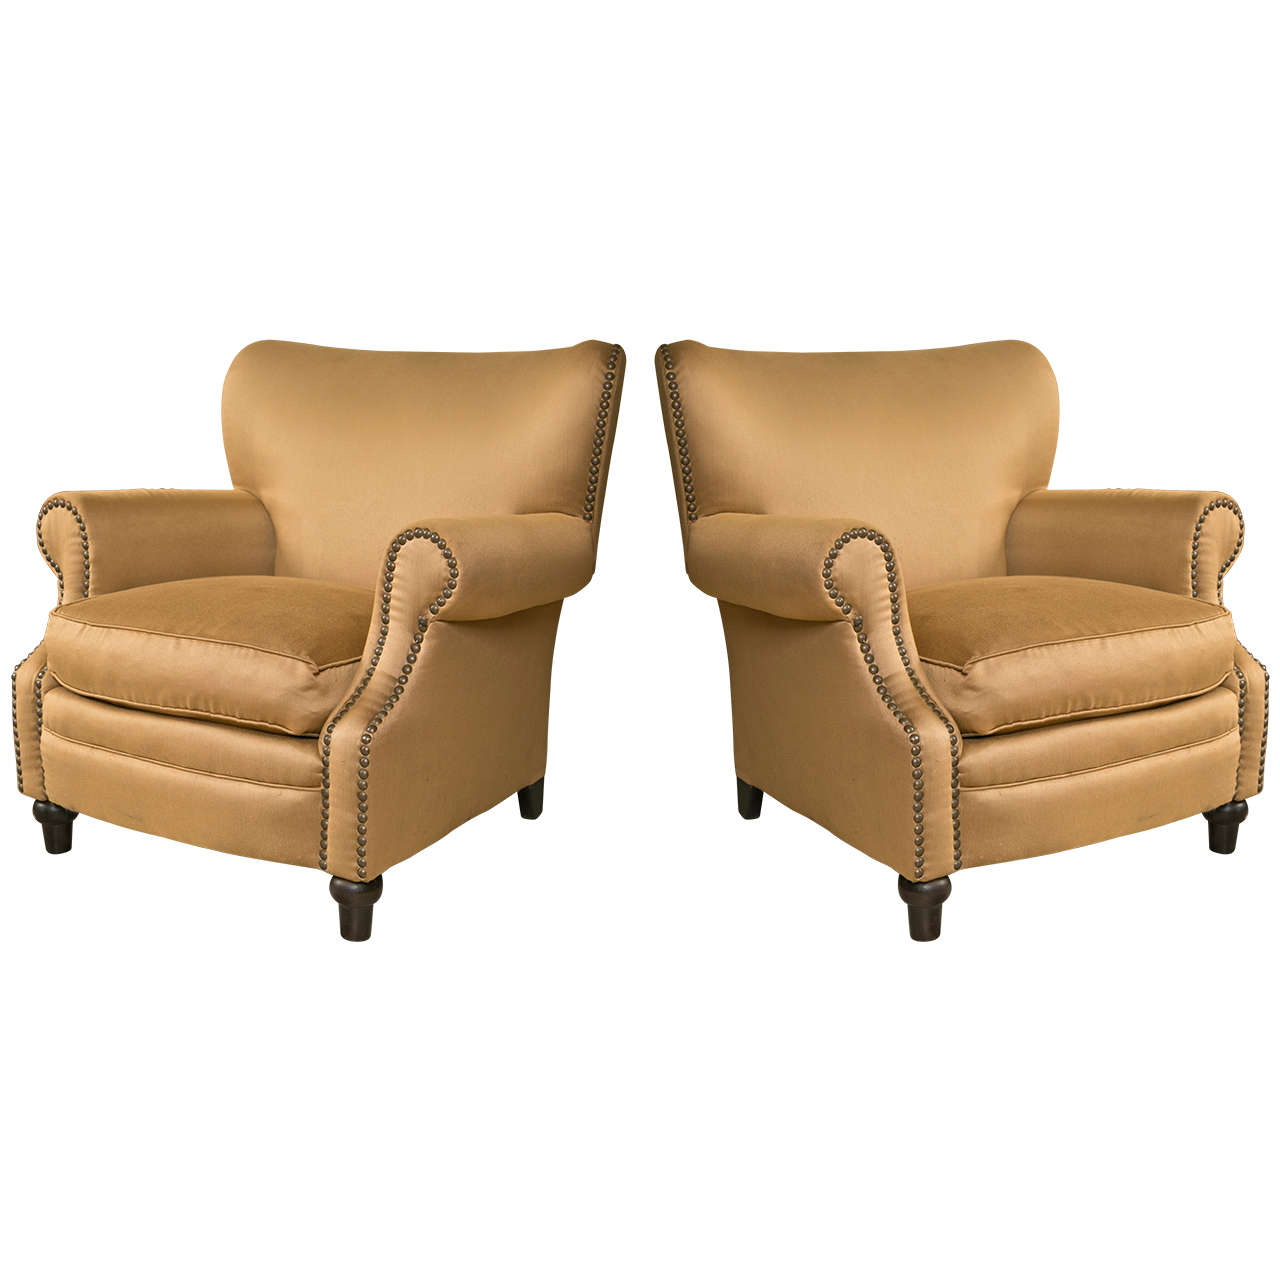 large lounge chair ergonomic wirecutter pair of overstuffed oversized arm chairs at 1stdibs